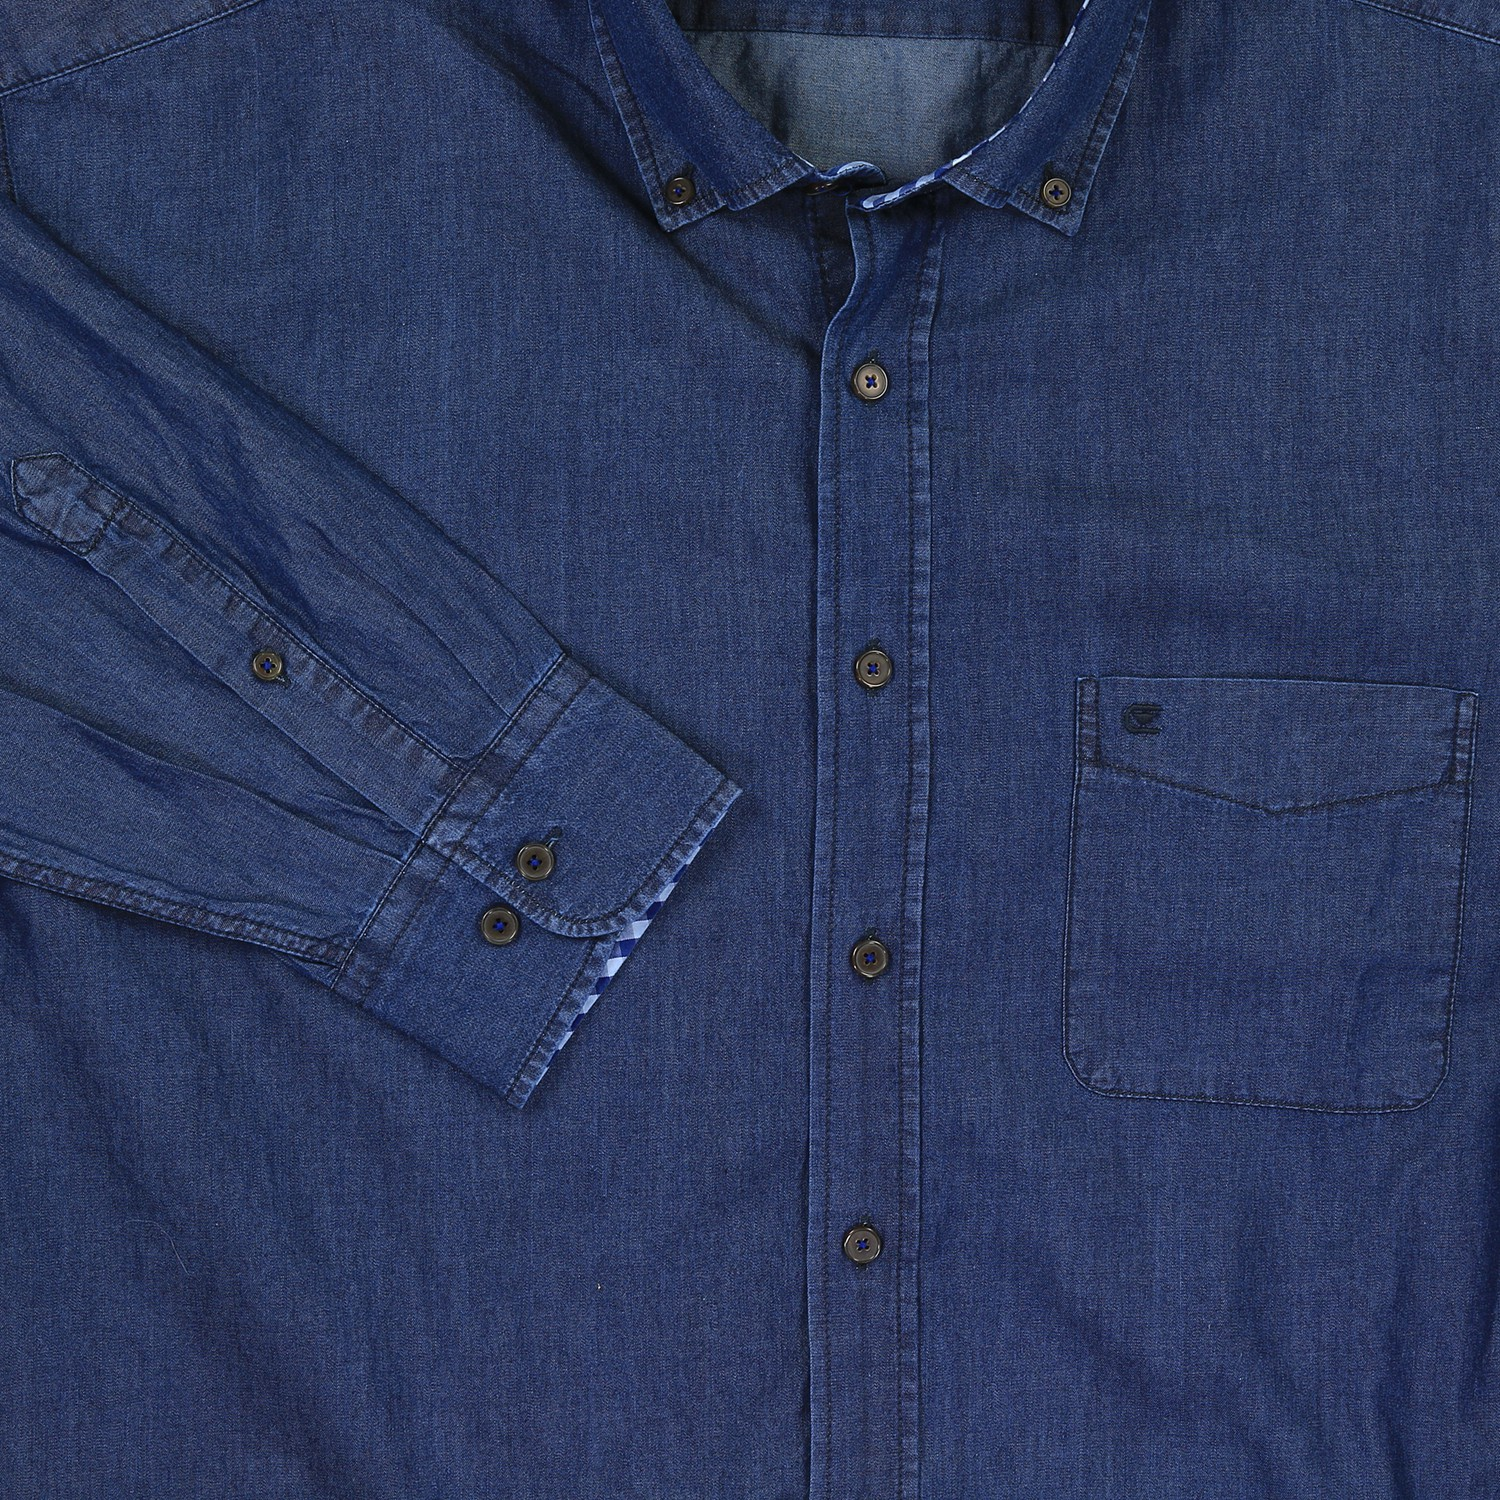 Detail Image to Shirt by Casamoda, blue coloured (jeans look) in king sizes available